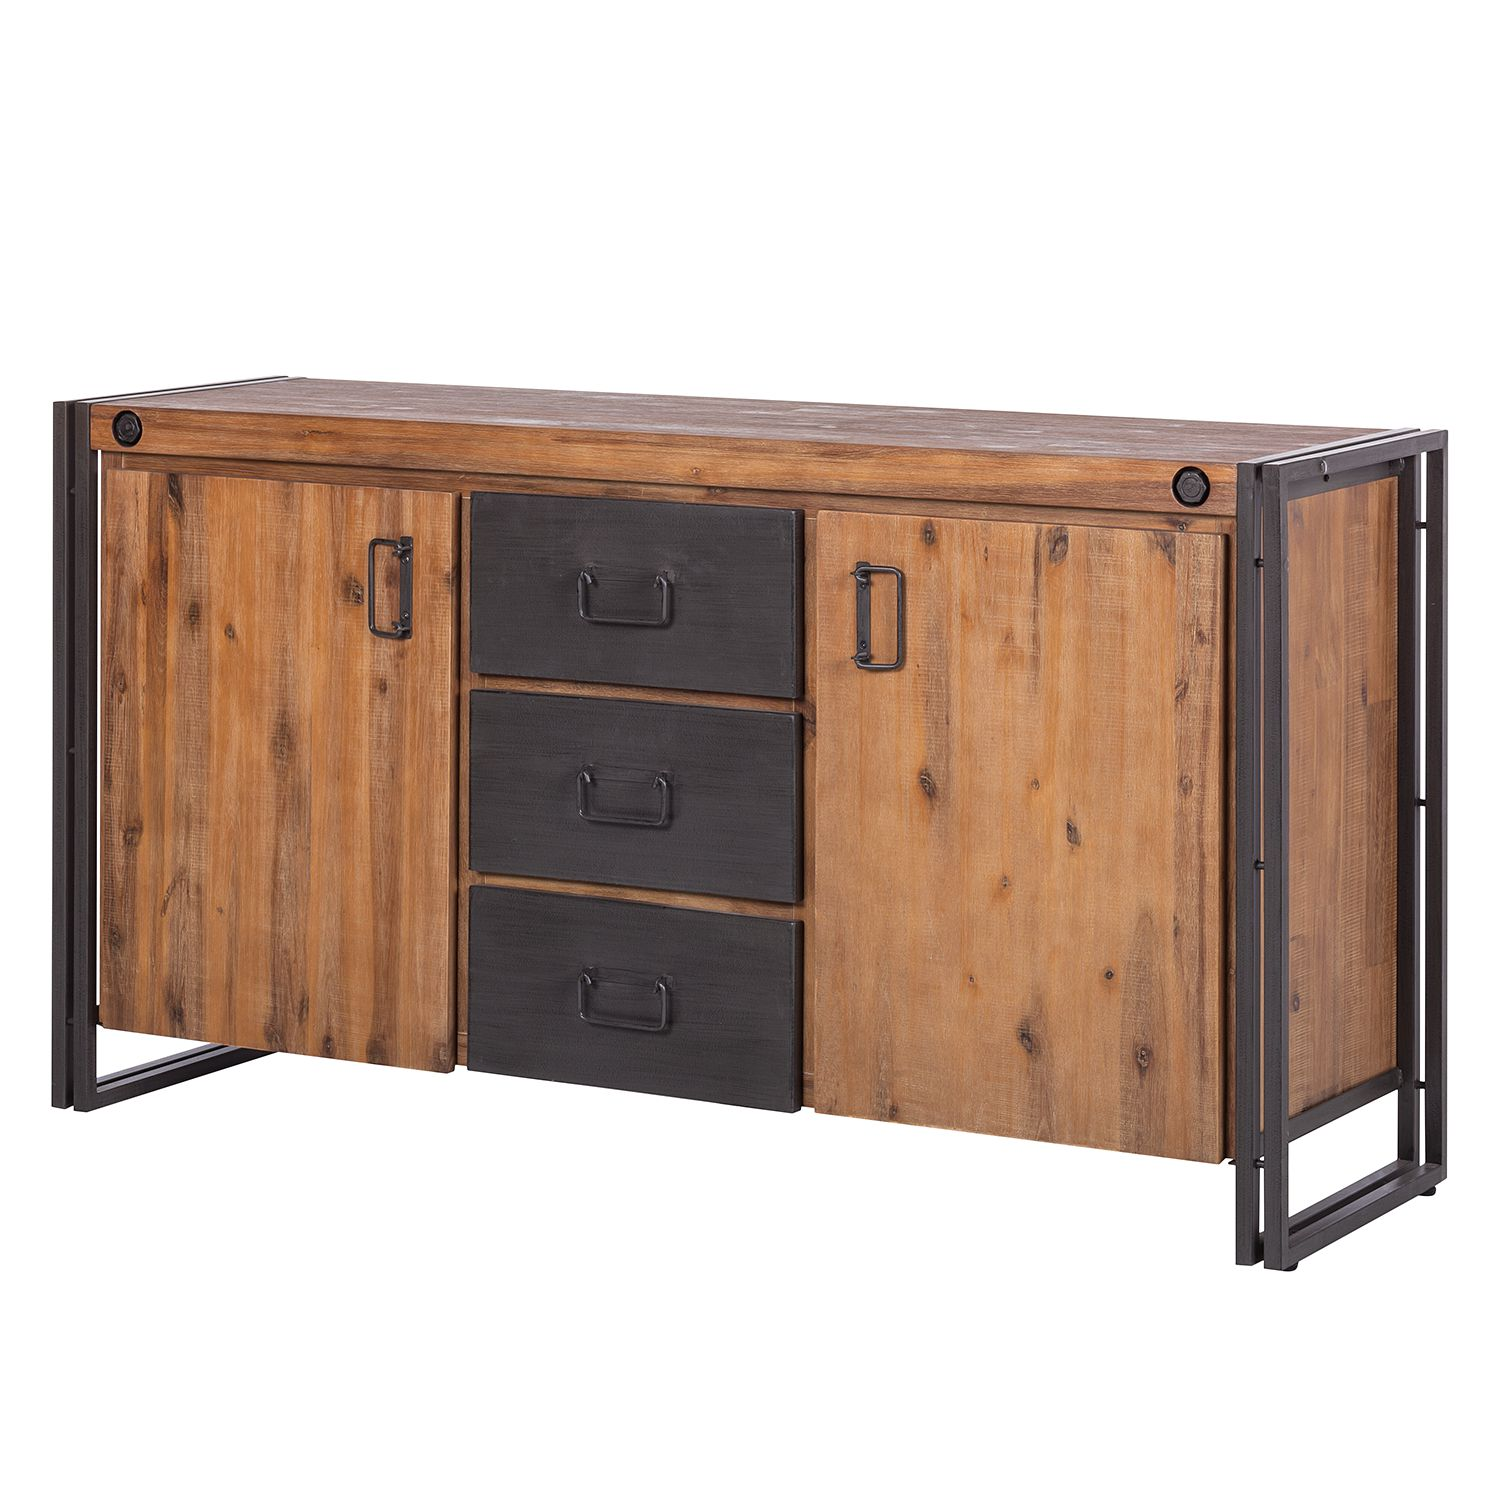 sideboard manchester ii akazie massiv metall ebay. Black Bedroom Furniture Sets. Home Design Ideas